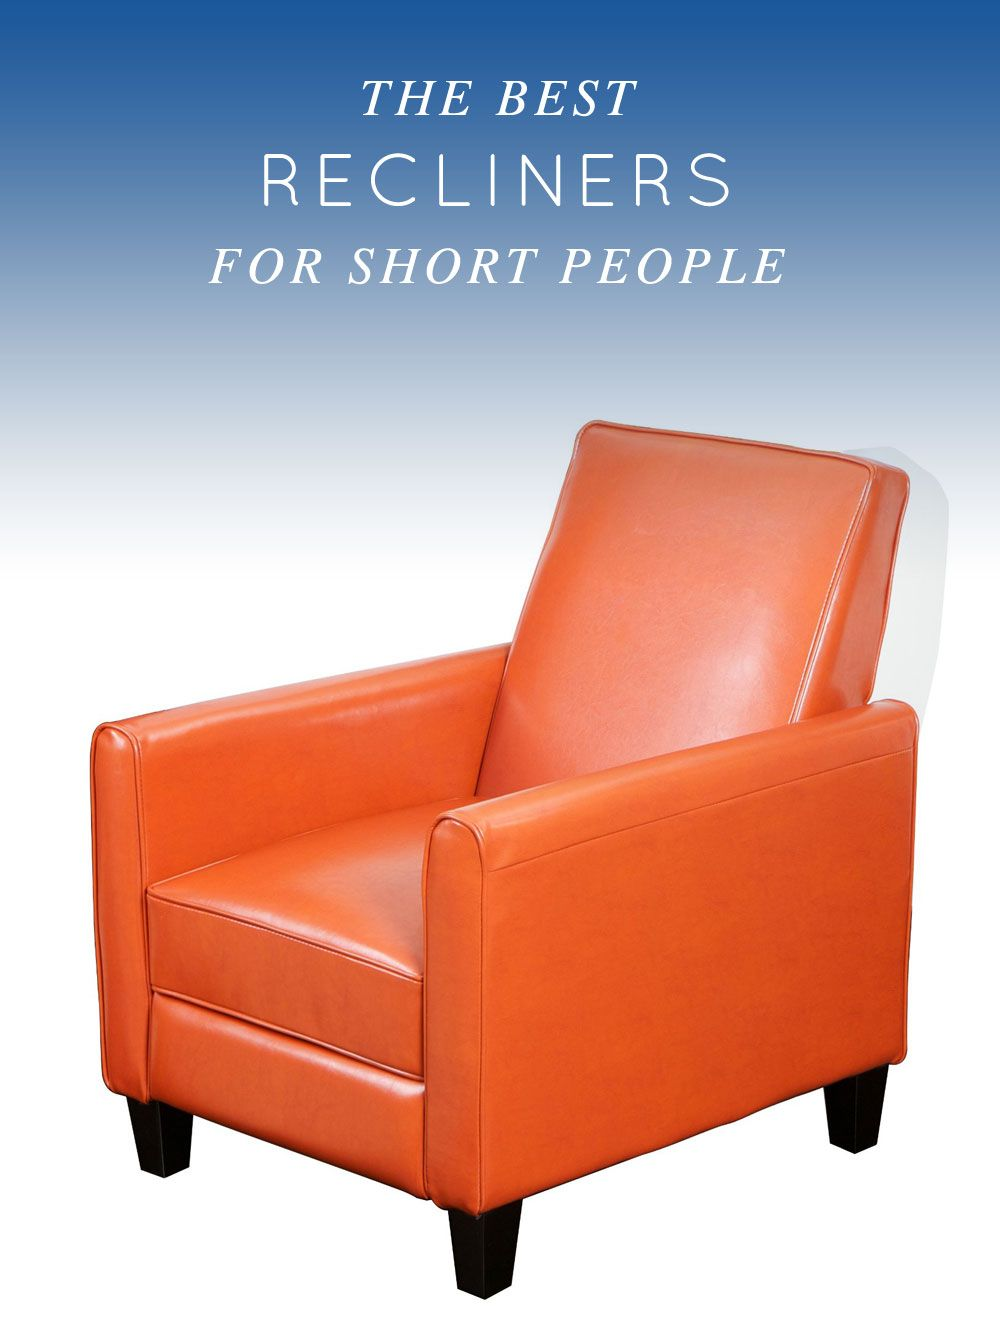 Find The Best Recliners For Short People Leather Club Chairs